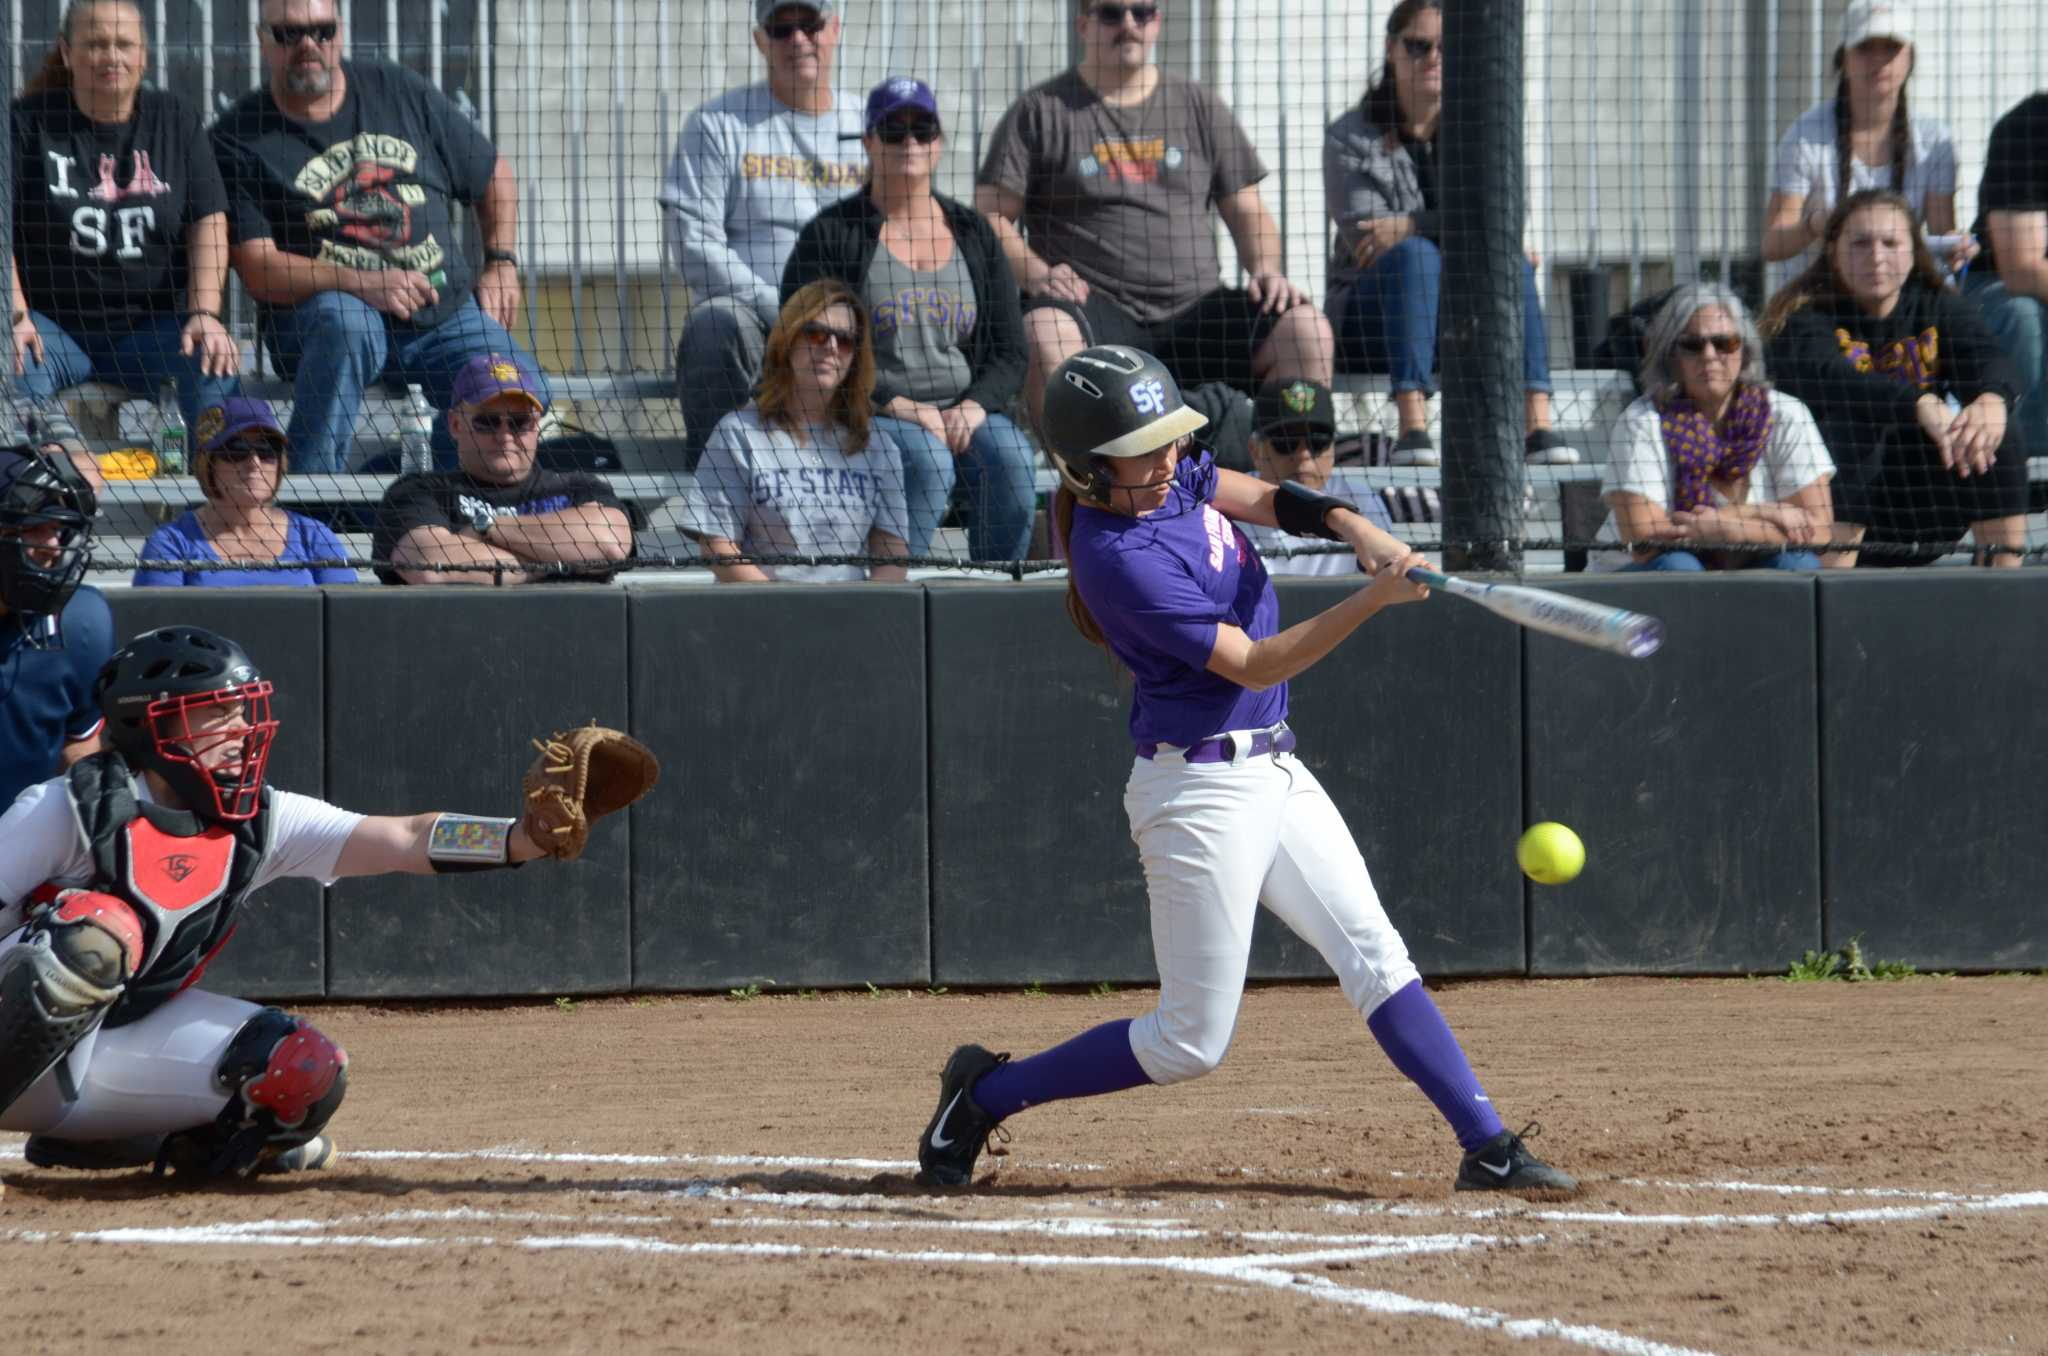 Gabby Reta up to bat during the double header game against the Cal State Pioneers on Feb. 12, 2017 at San Francisco State University. The Pioneers won both games held on Sunday.  (Christianna Fjelstad/ Xpress)